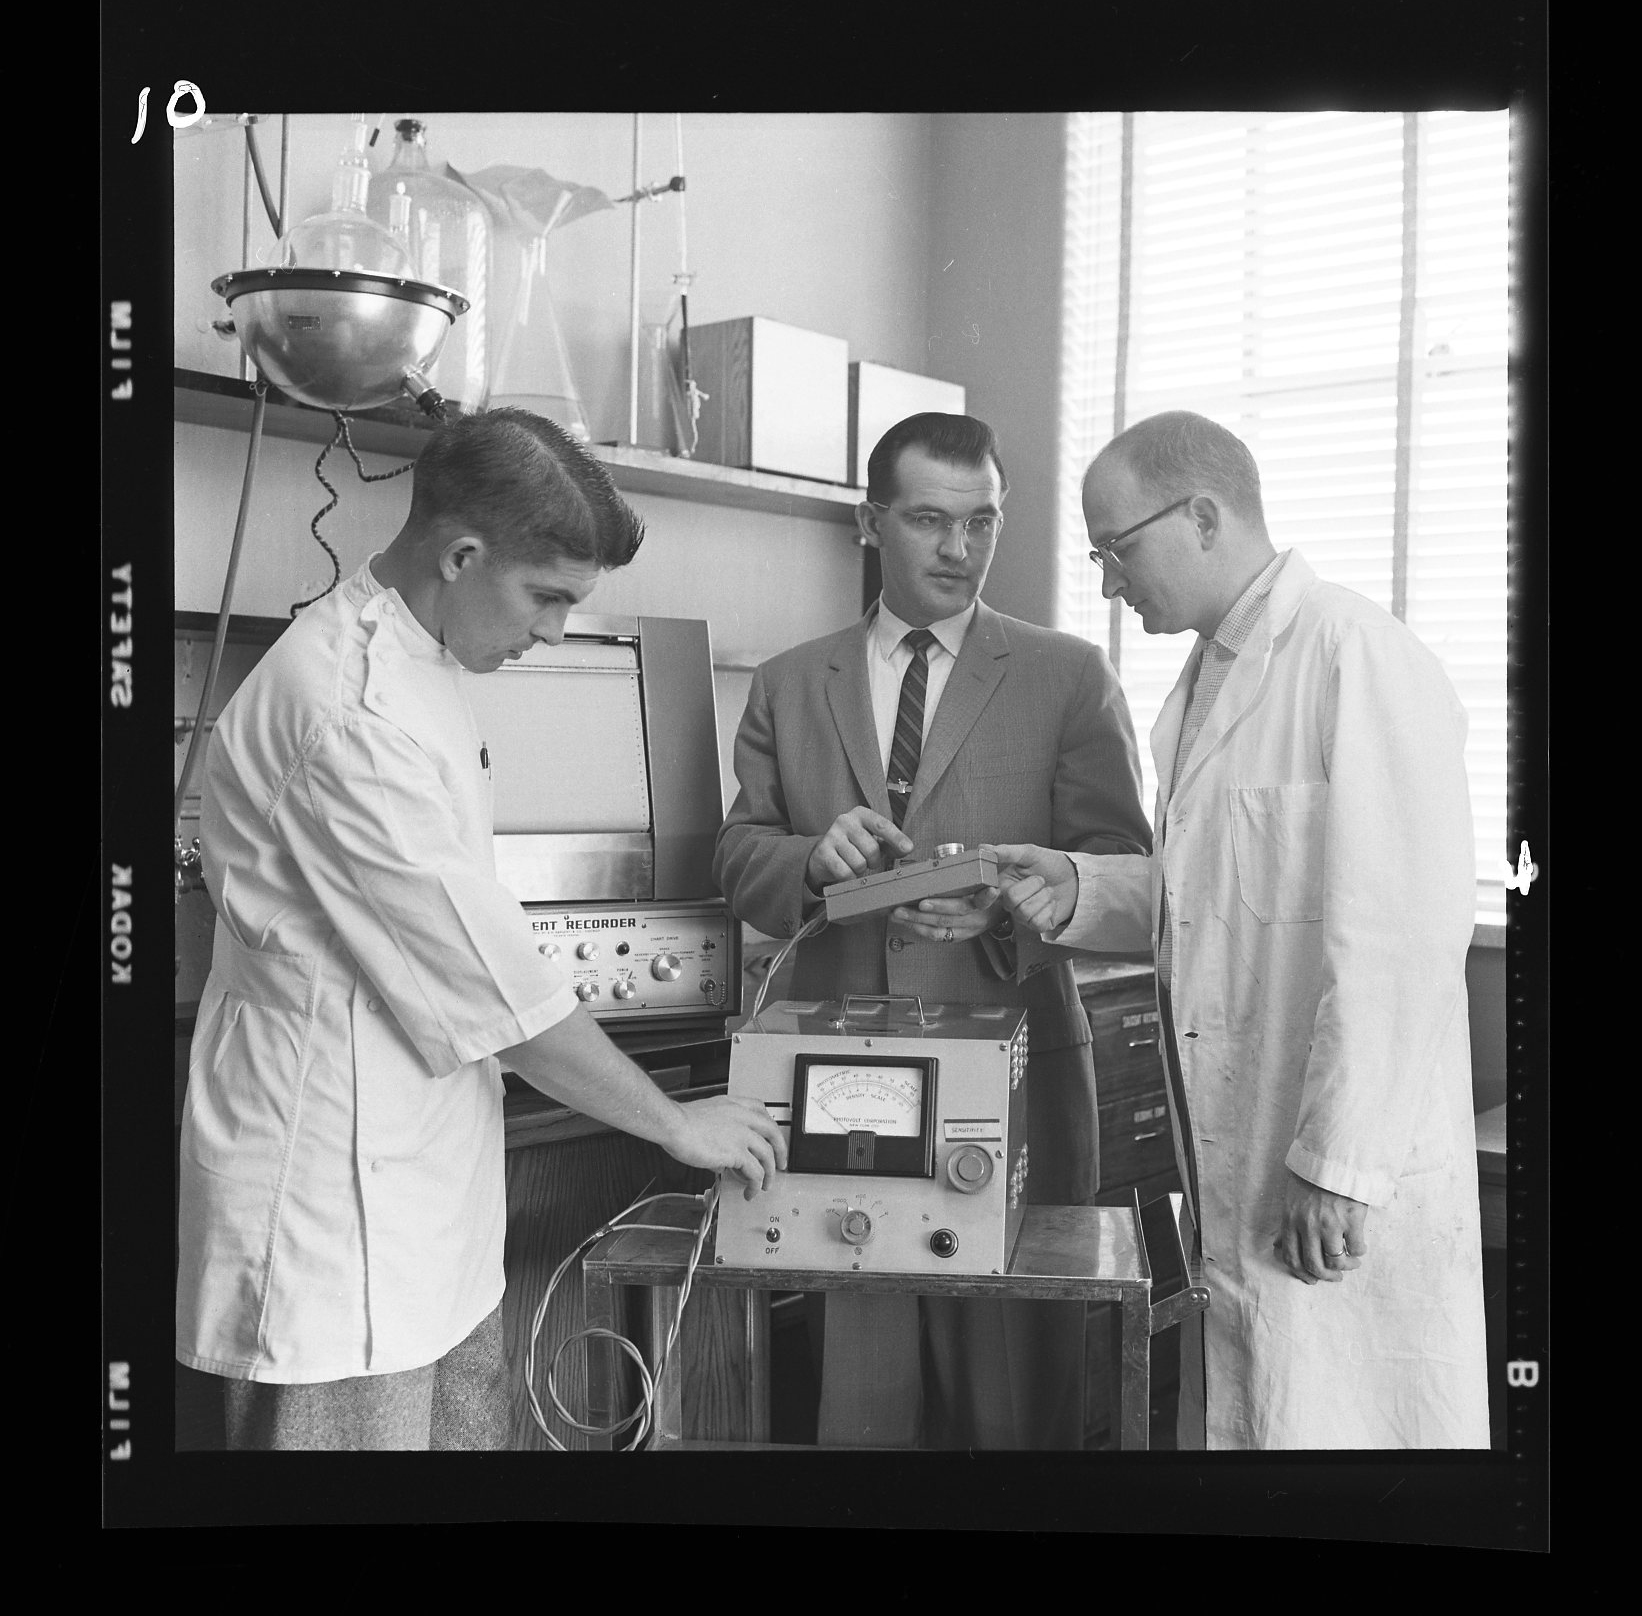 Historical photo of pharmacy dean and students in lab